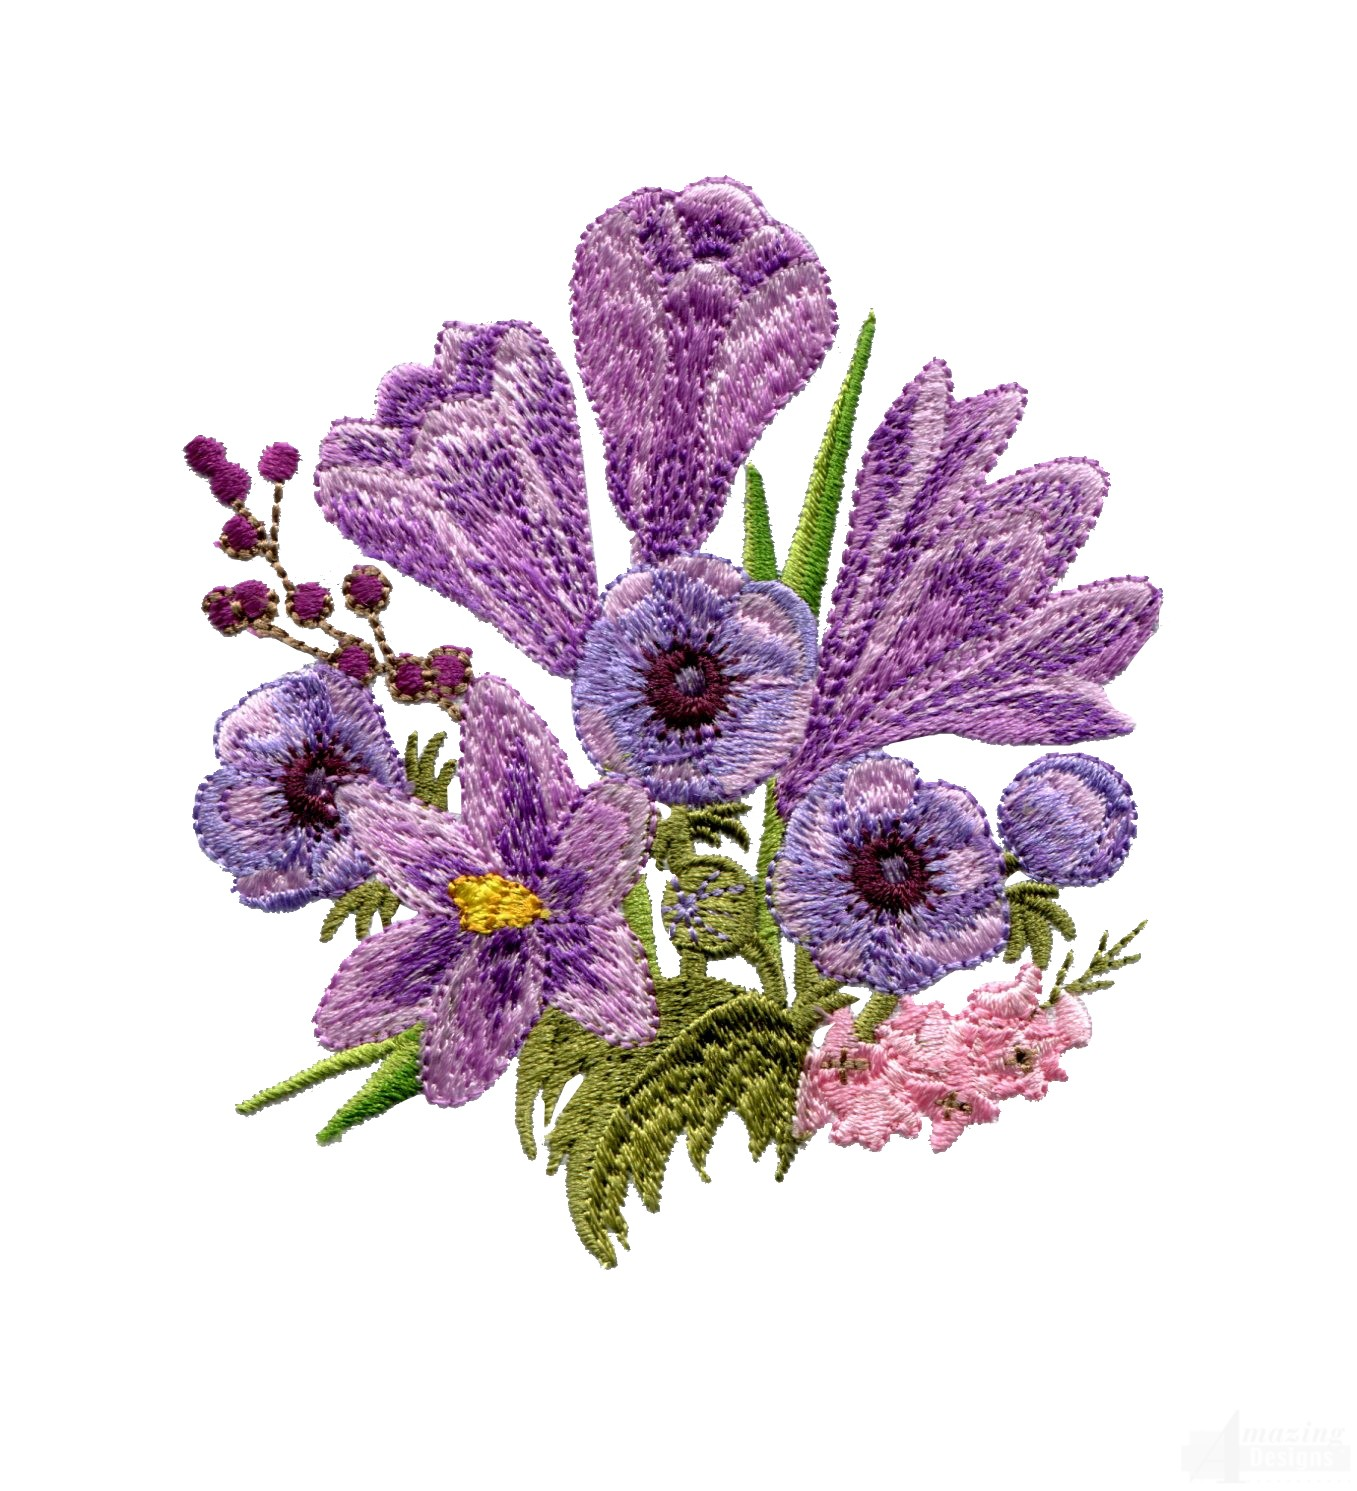 Swnfl flourishing flowers embroidery design